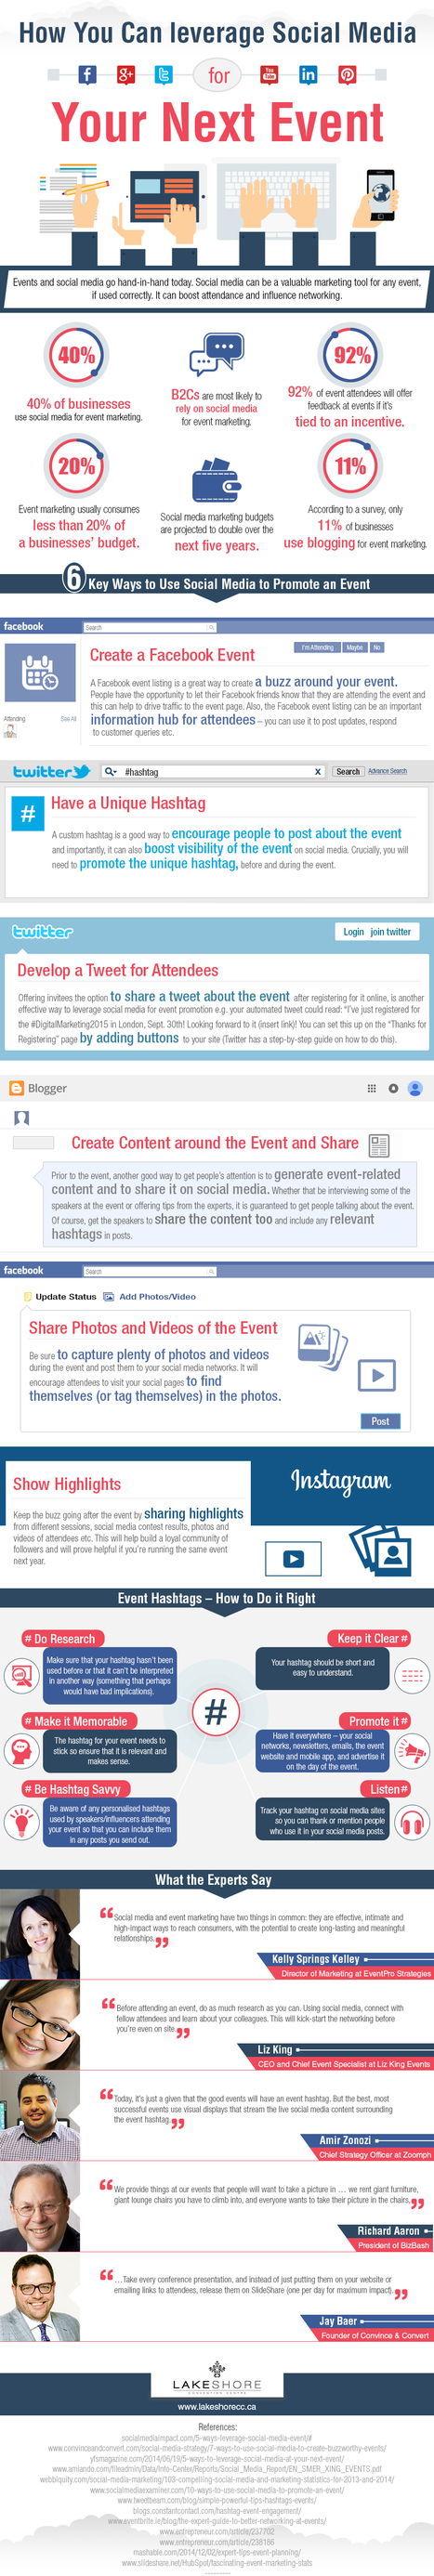 How to Use Social Media for Event Marketing #Infographic | The Twinkie Awards | Scoop.it